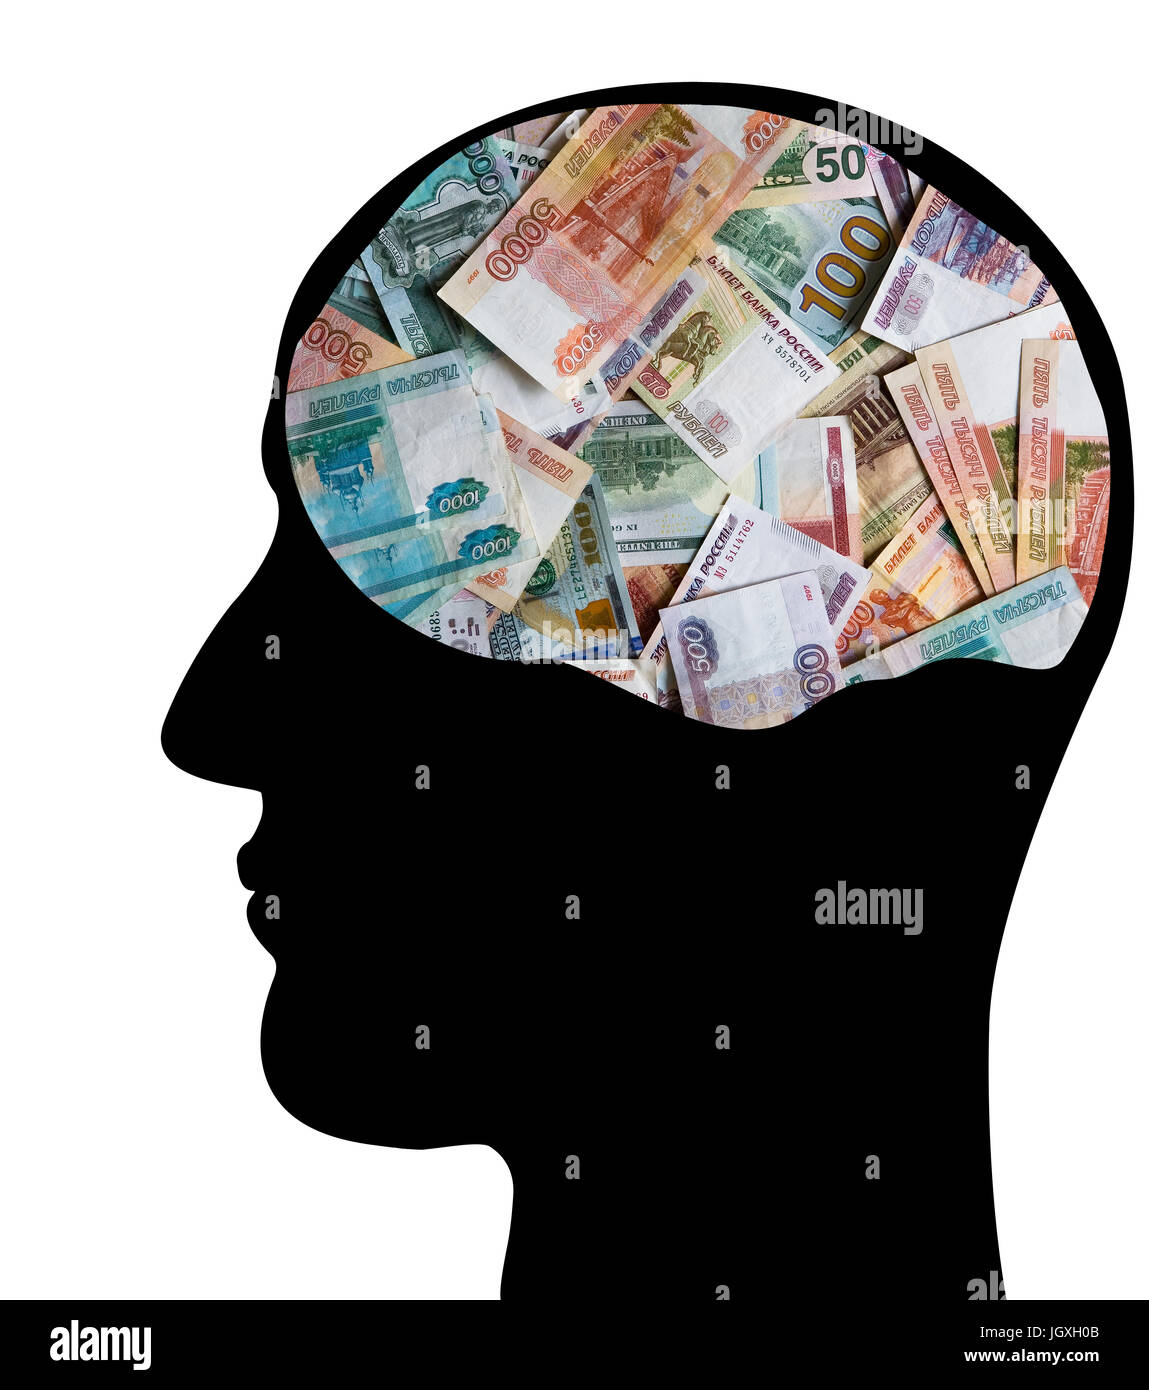 Profile of the head of a businessman. Many monetary denominations of different denominations. Rubles and dollars. - Stock Image